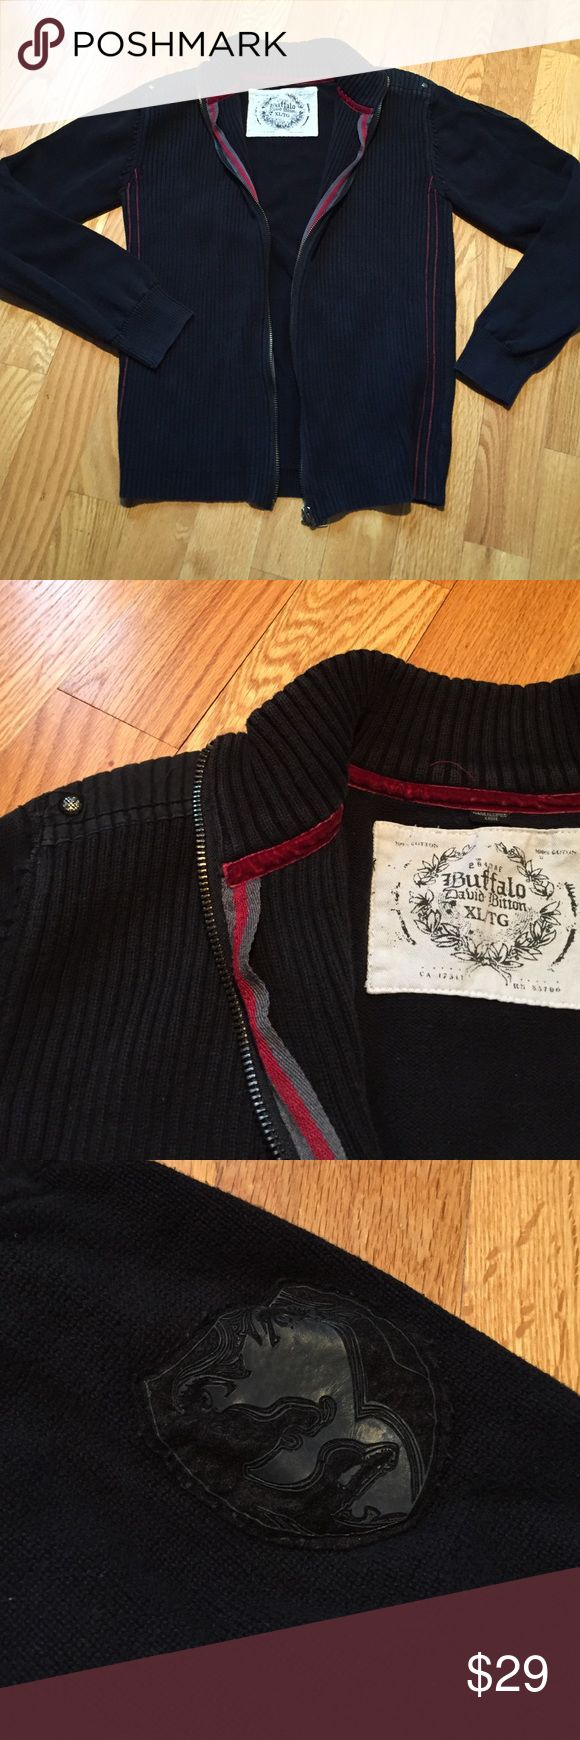 Buffalo David Bitton zip up sweater Buffalo David Bitton 100% cotton black ribbed zip up. Had patch on left upper sleeve and red inside lining. Great condition Buffalo David Bitton Sweaters Zip Up